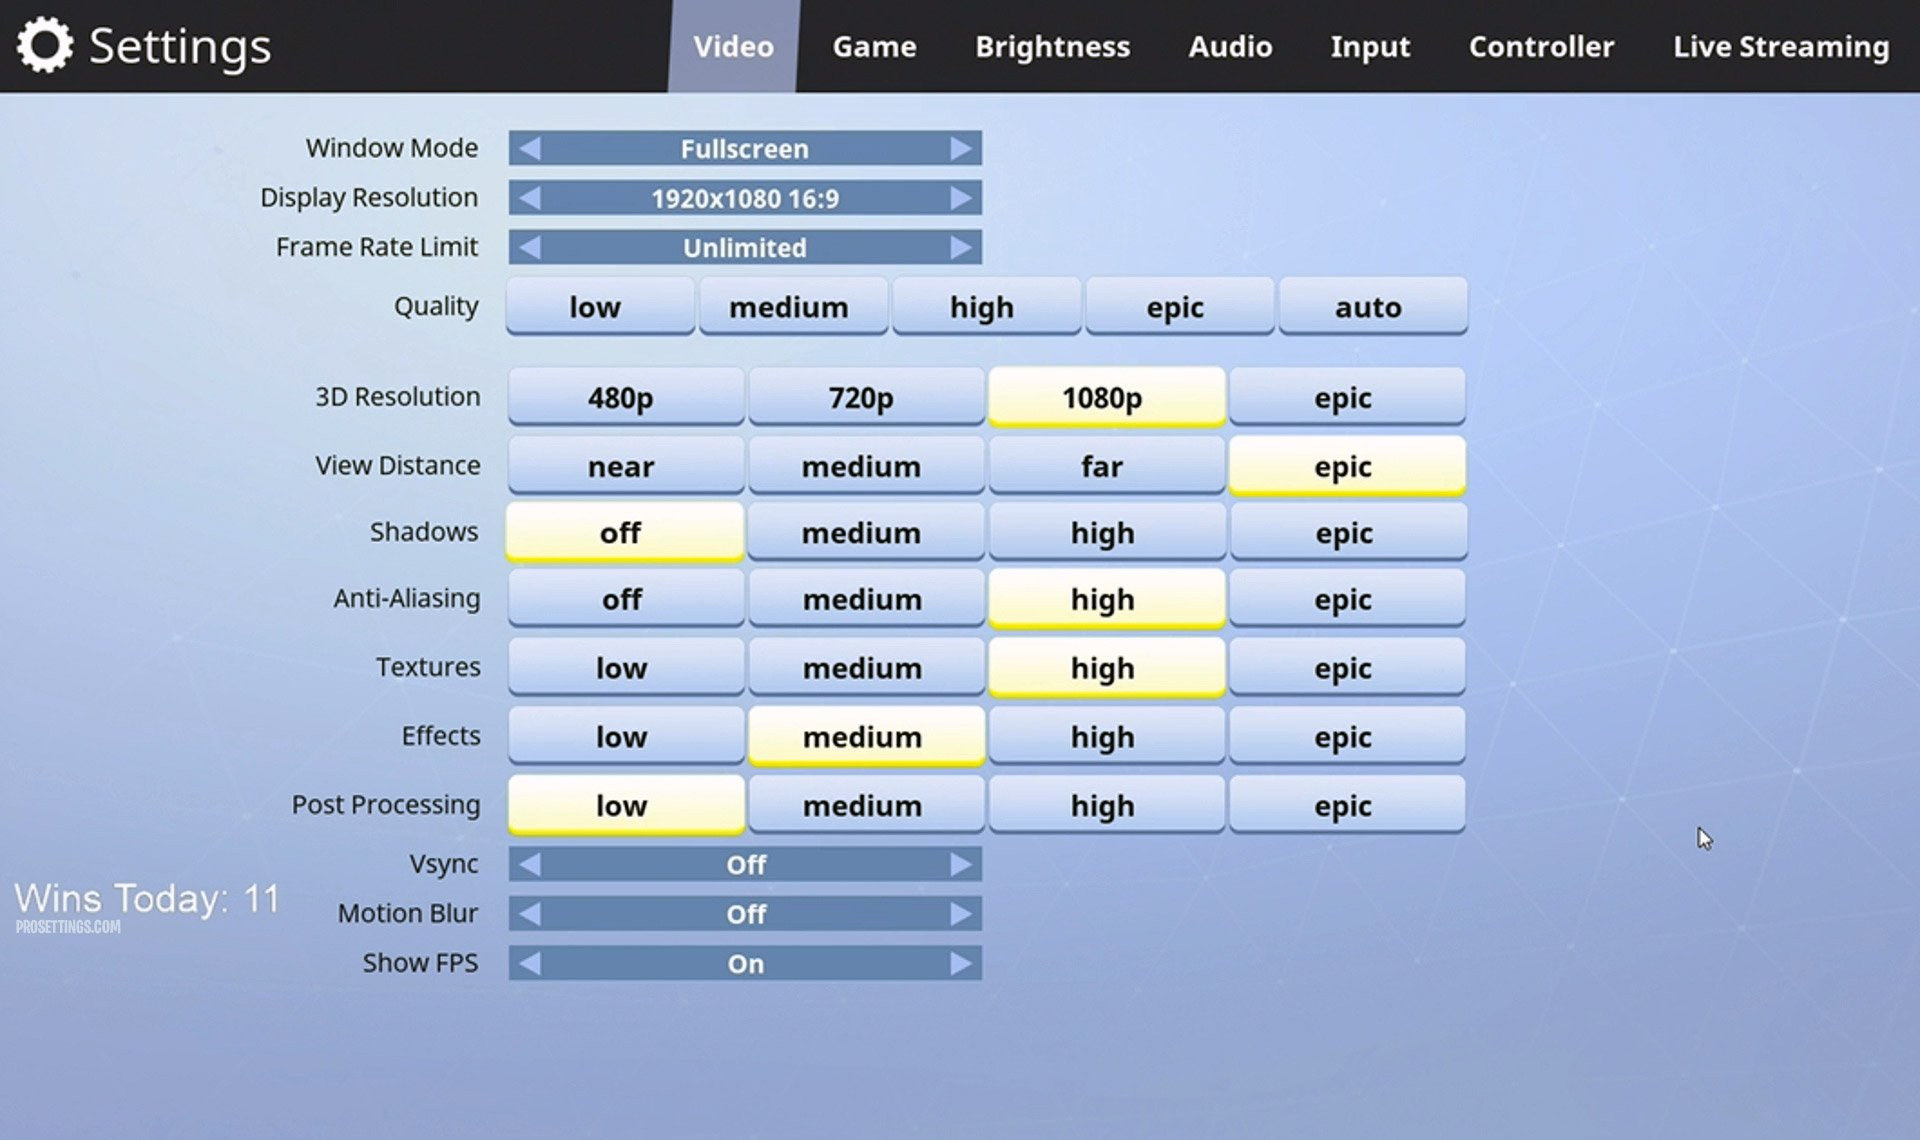 SypherPK Fortnite Settings, Keybinds, Config, Sensitivity & Gear 2019